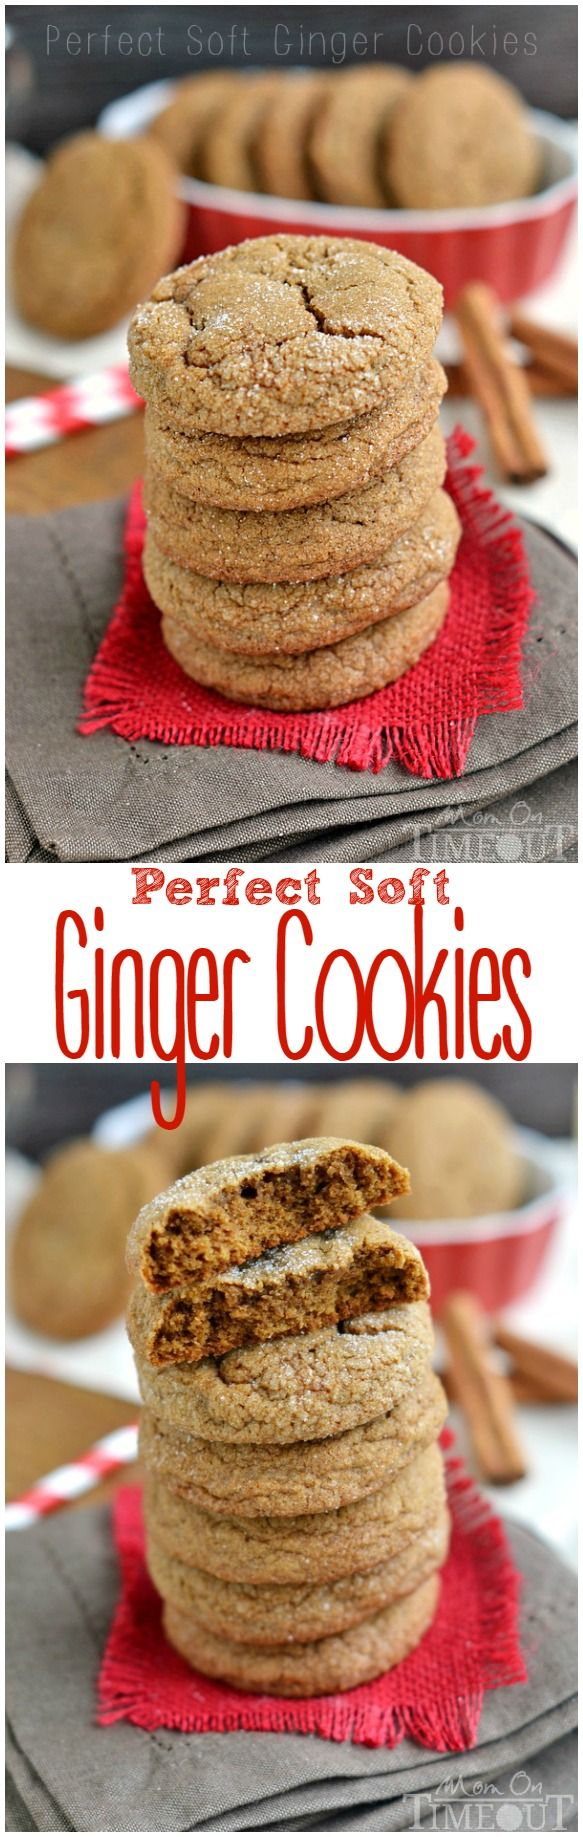 With plenty of spice and warmth, these Perfect Soft Ginger Cookies are just what your holiday season has been waiting for! | MomOnTimeout.com | #dessert #recipe #cookie #spon